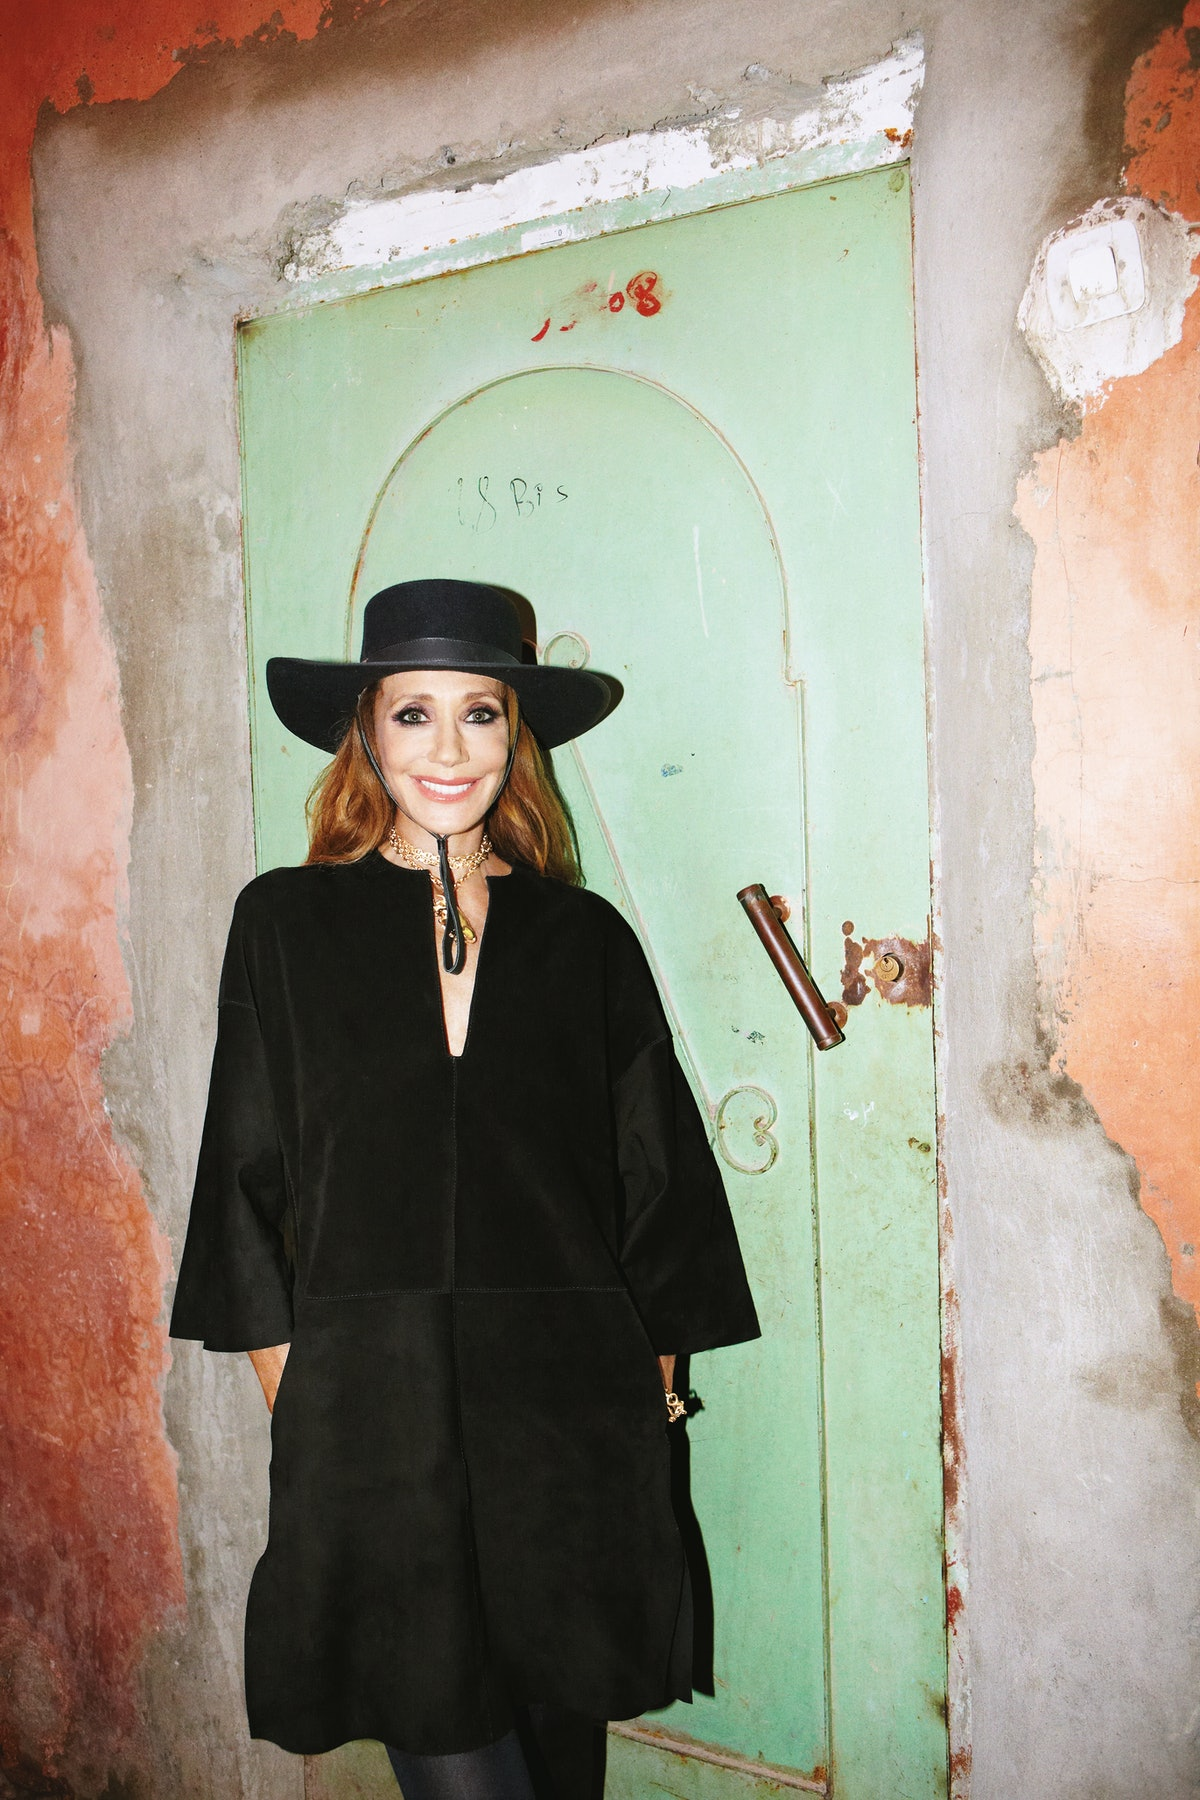 Valentino dress; Valentino Garavani charm necklace and bracelet; Wolford tights; stylist's own hat. For stores, prices, and more, go to wmag.com/marisa-berenson-marrakech.